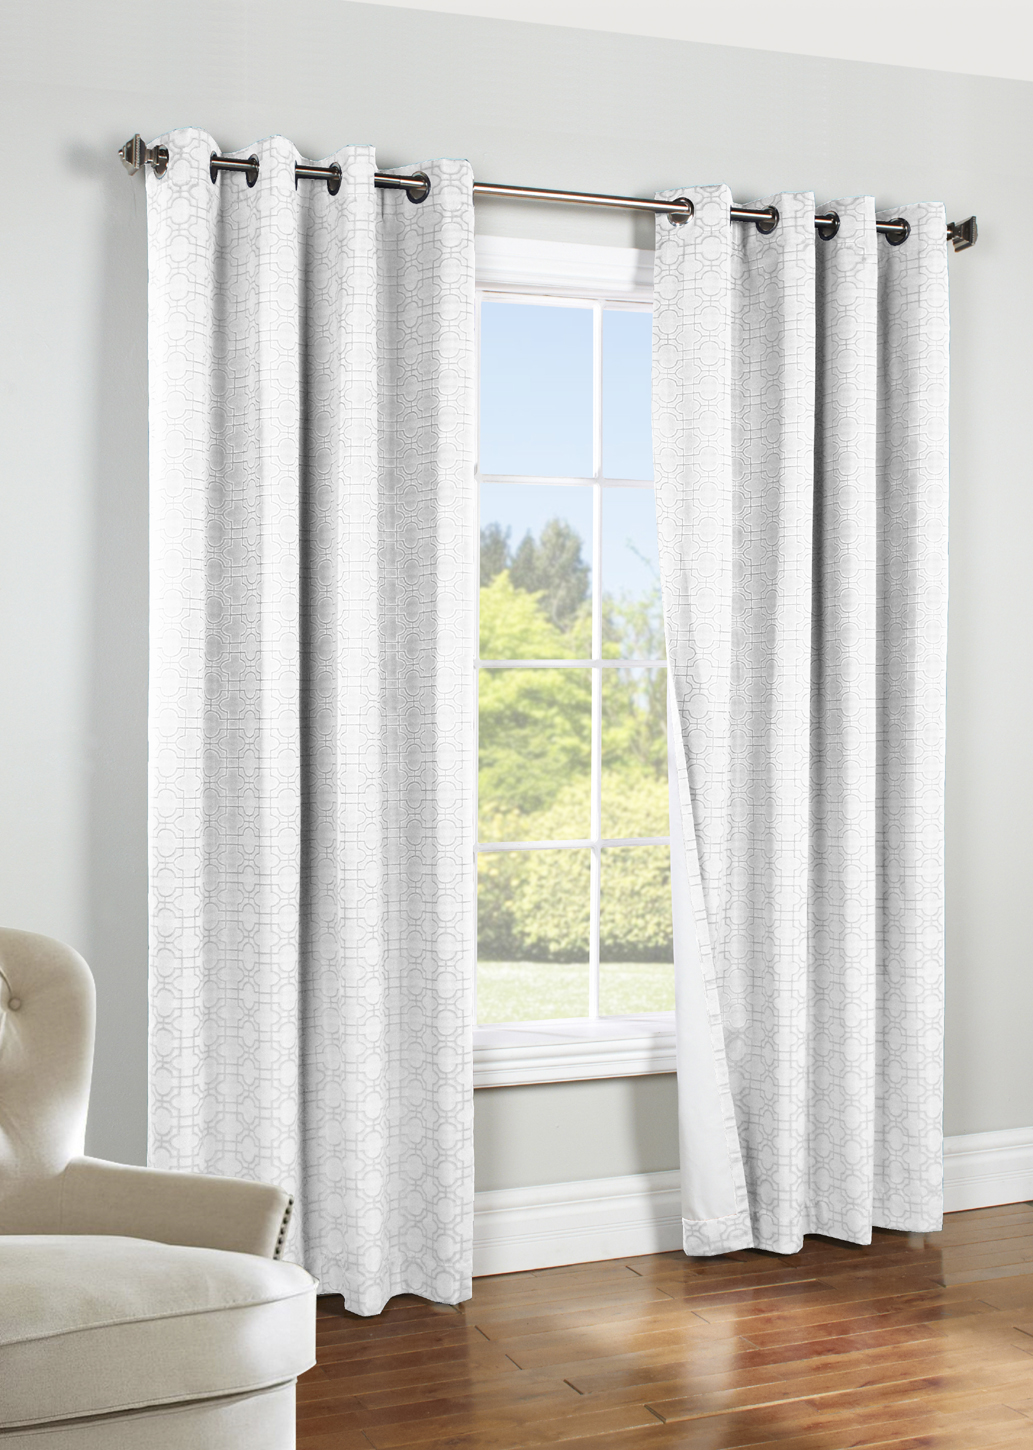 curtain panel and valance insulated thermalogic shangri la com pin paulshomefashions curtains